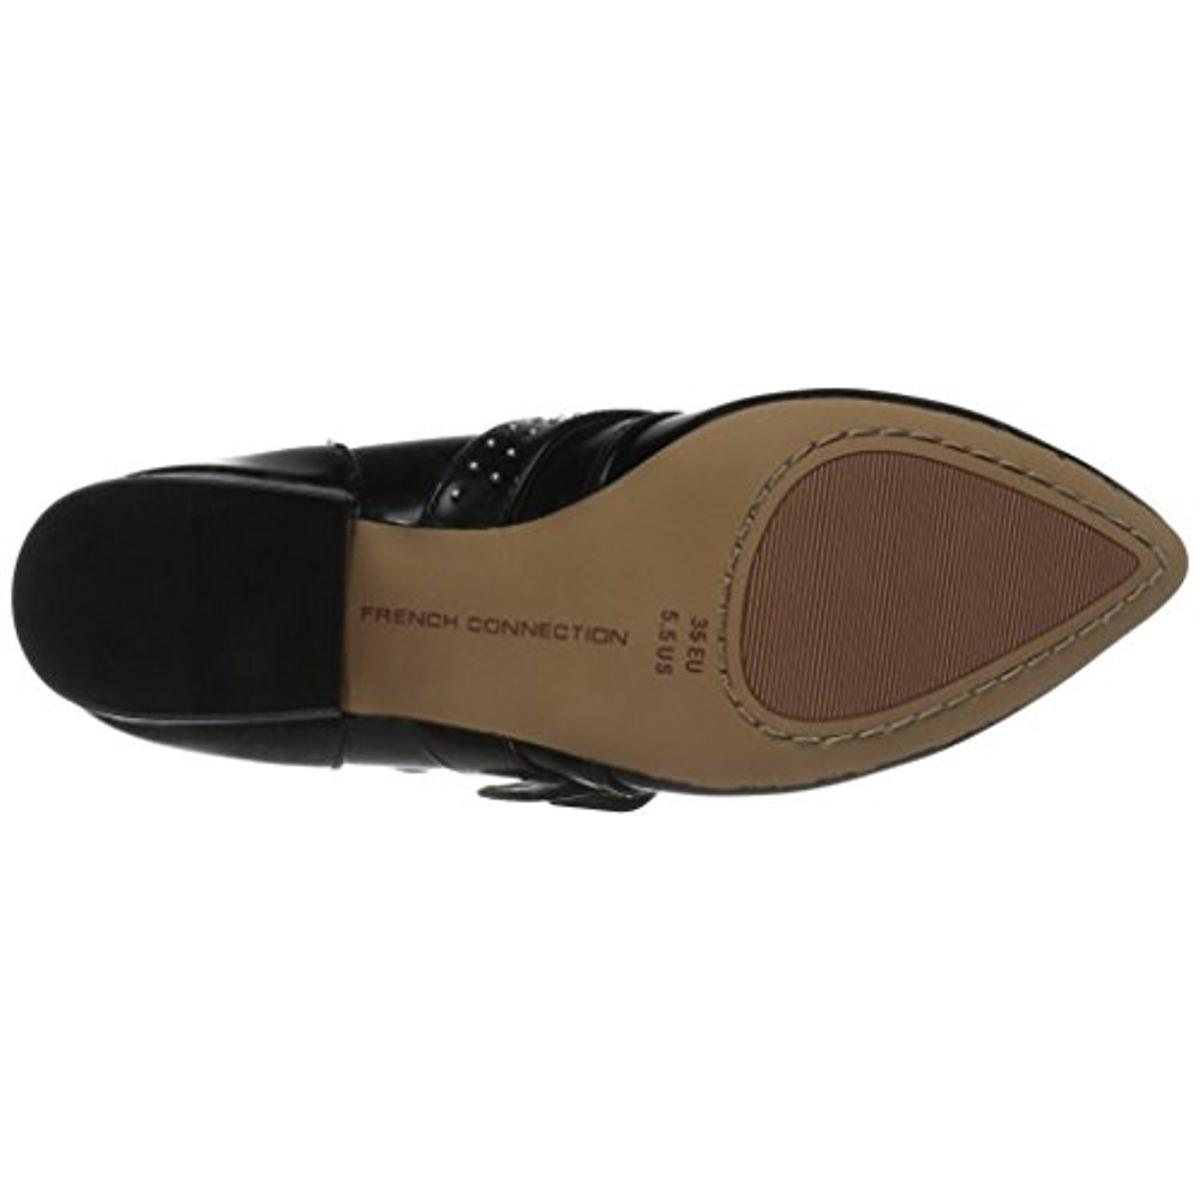 French-Connection-Womens-Roree-Leather-Studded-Booties-Shoes-BHFO-3115